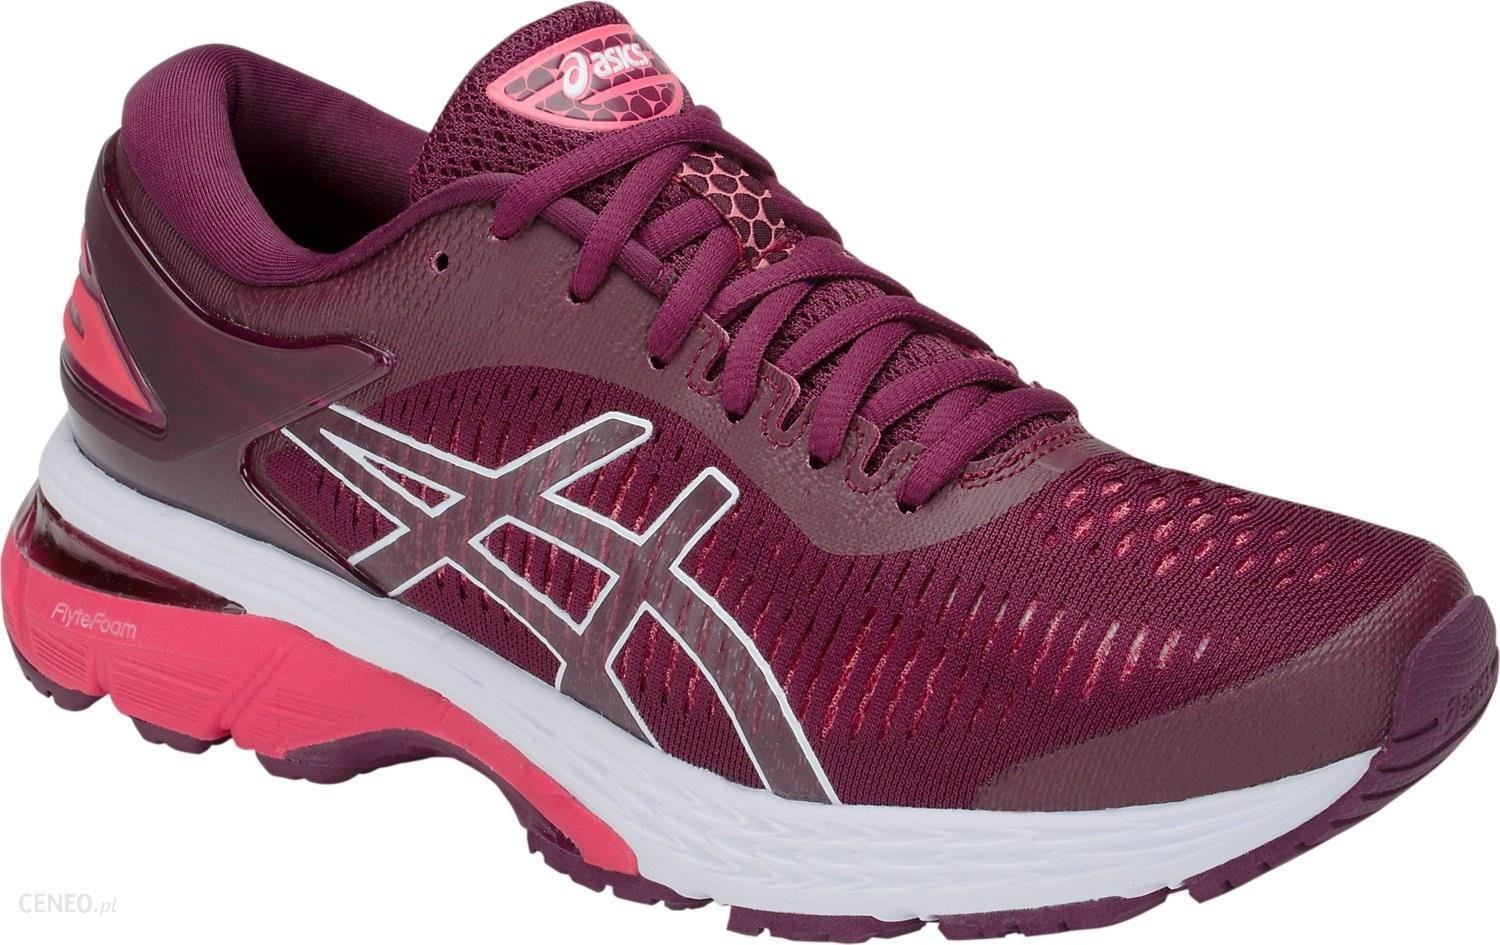 74762274754a6 Asics Gel Kayano 25 Roselle Pink Camo 1012A026500 - Ceny i opinie ...